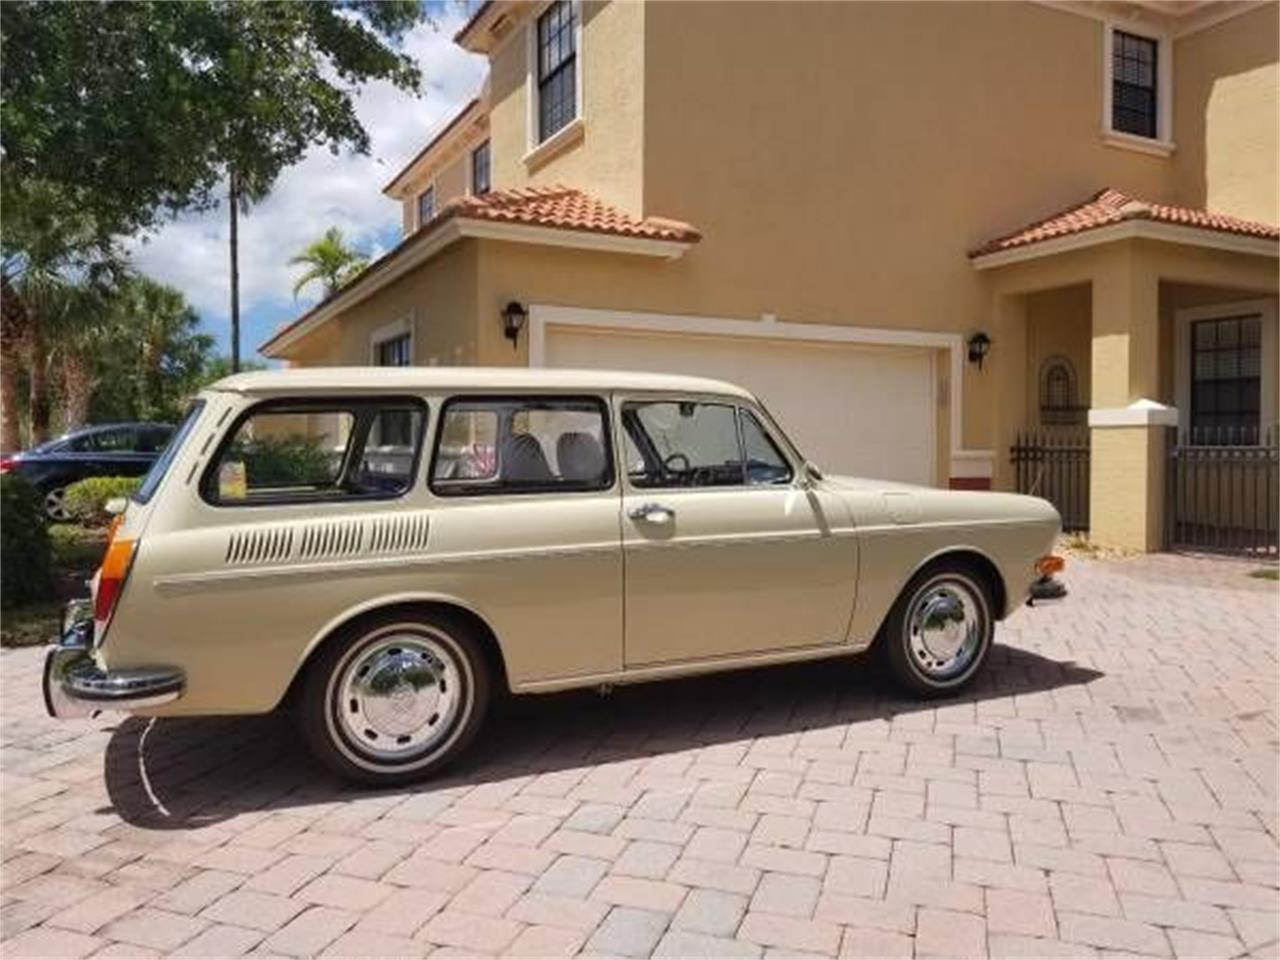 Large Picture of Classic 1971 Volkswagen Type 3 located in Cadillac Michigan - $26,995.00 Offered by Classic Car Deals - P1BA